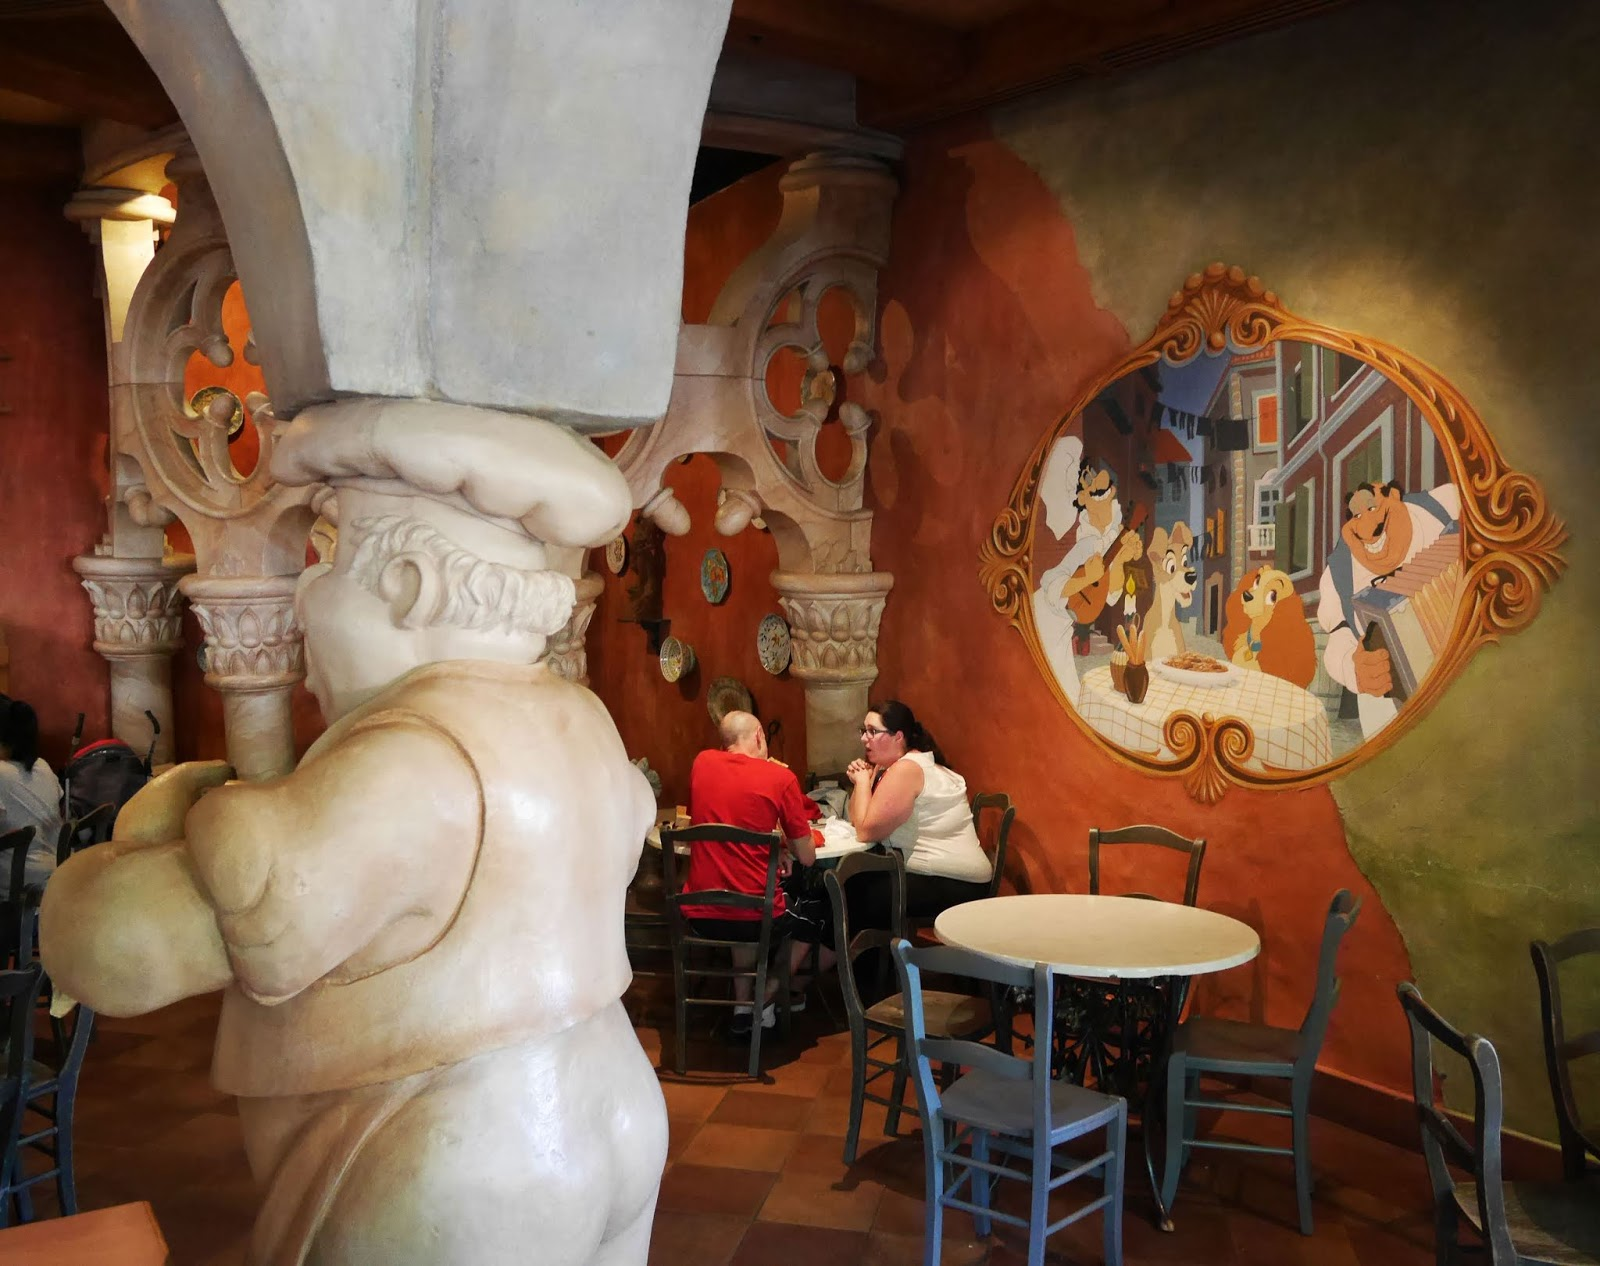 Pizzeria Bella Notte at Disneyland Paris